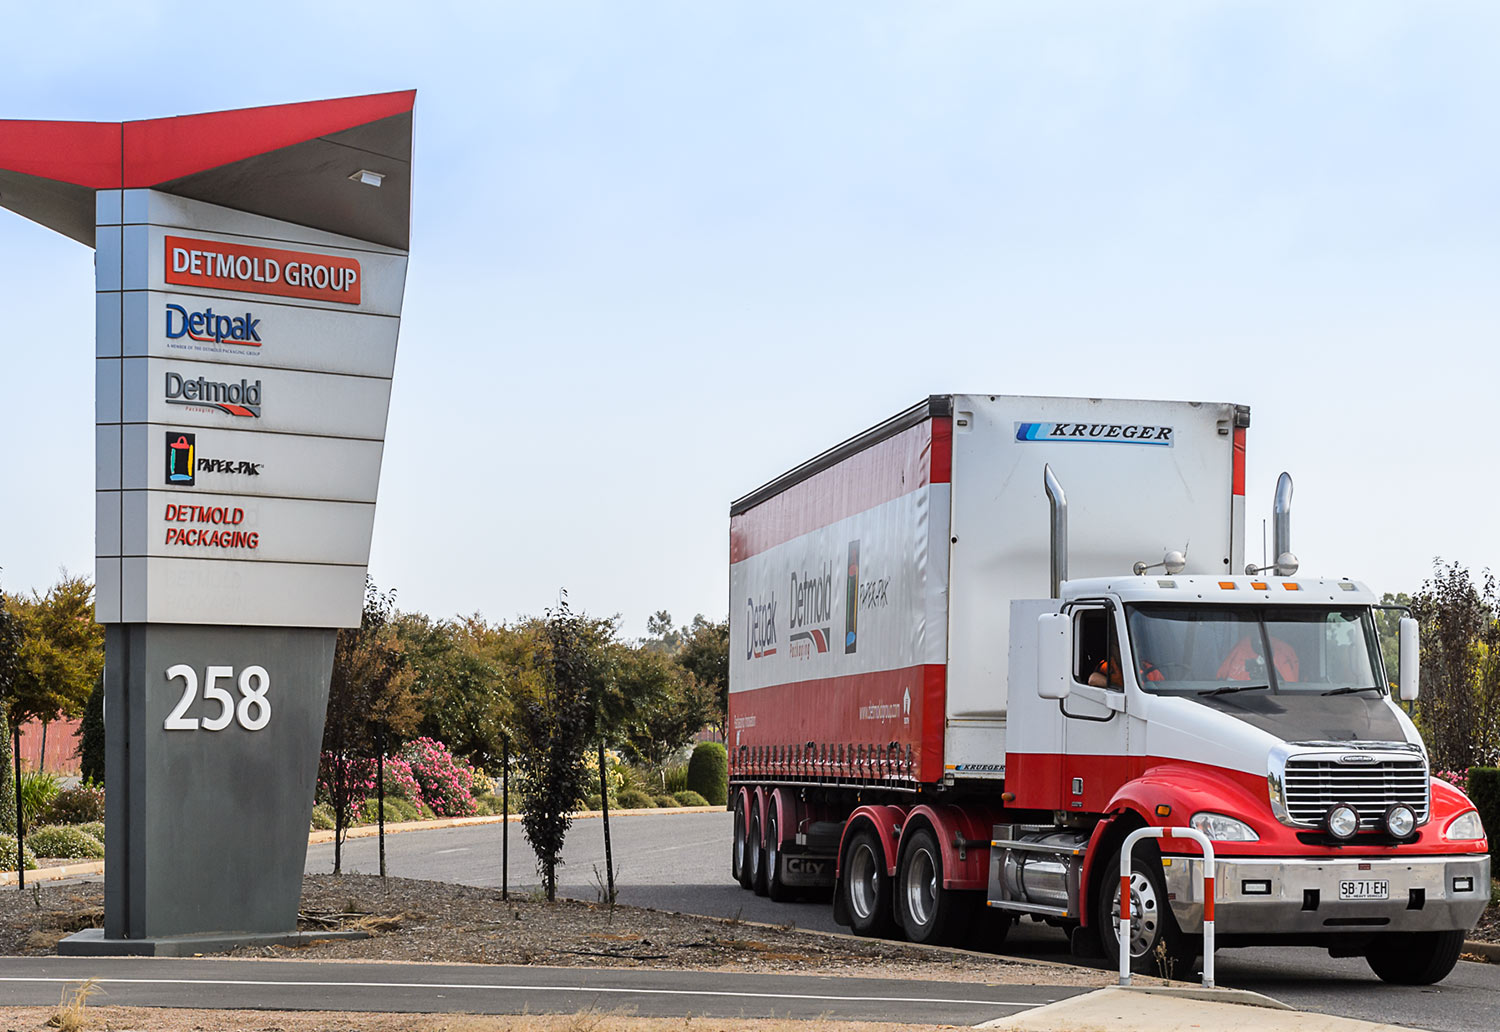 Truck with machine parts delivering to Detmold Group